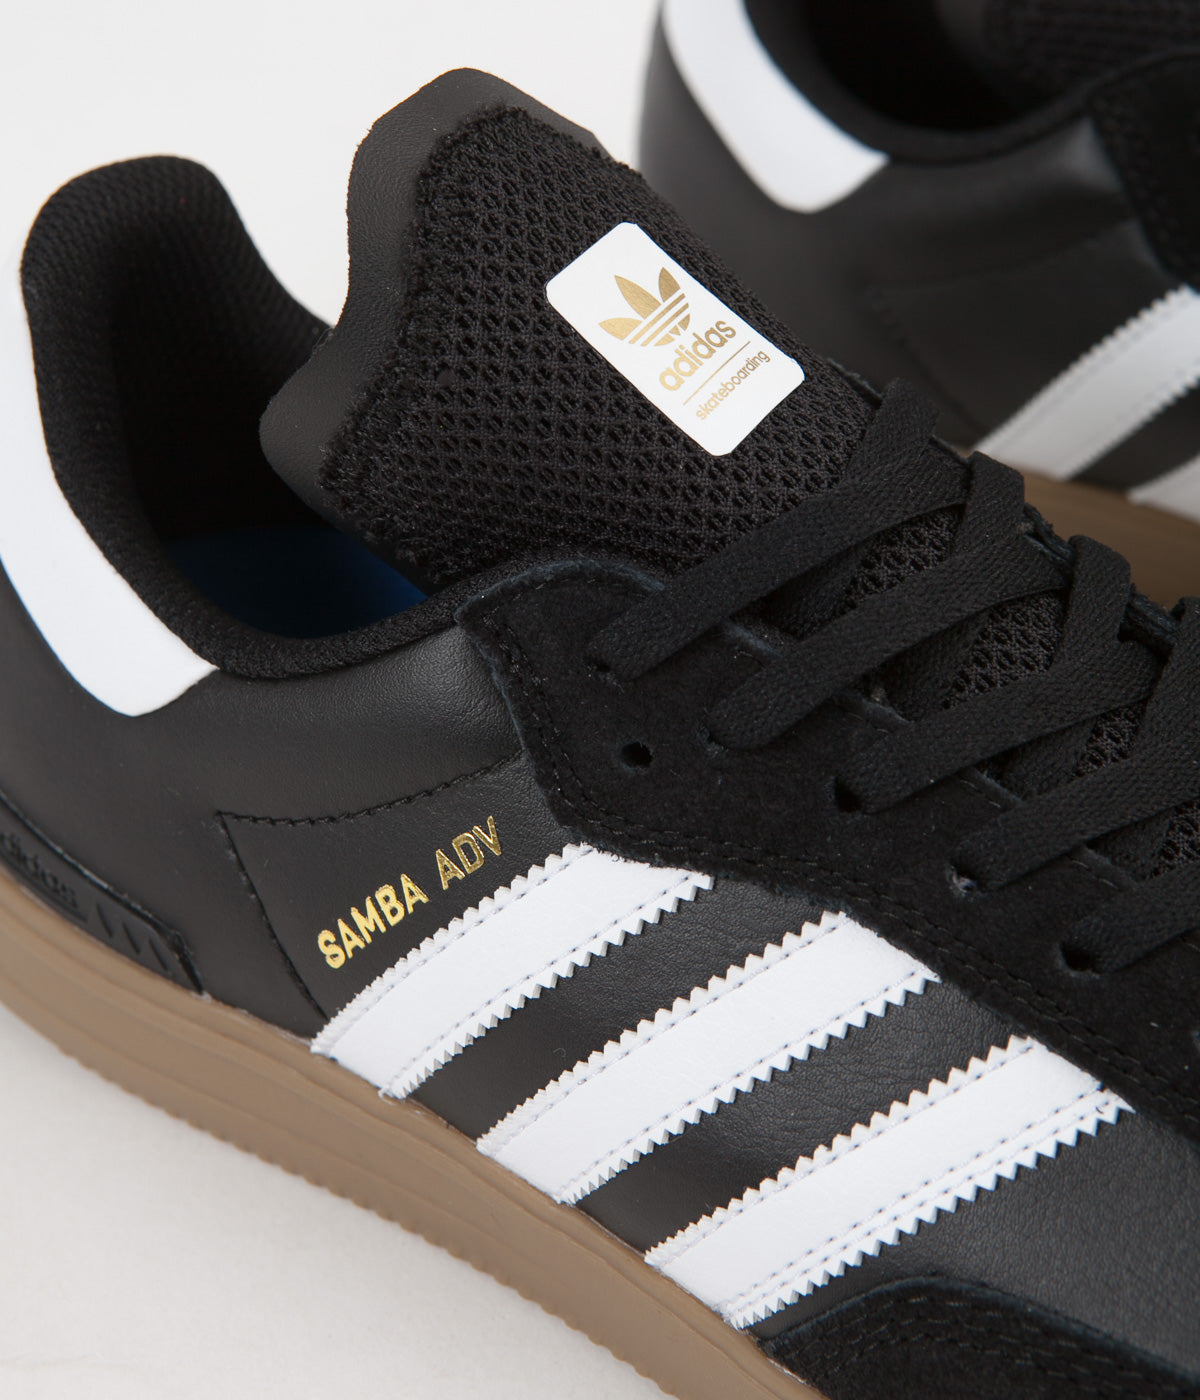 Adidas Samba Adv Shoes - Core Black / FTW White / Gum4